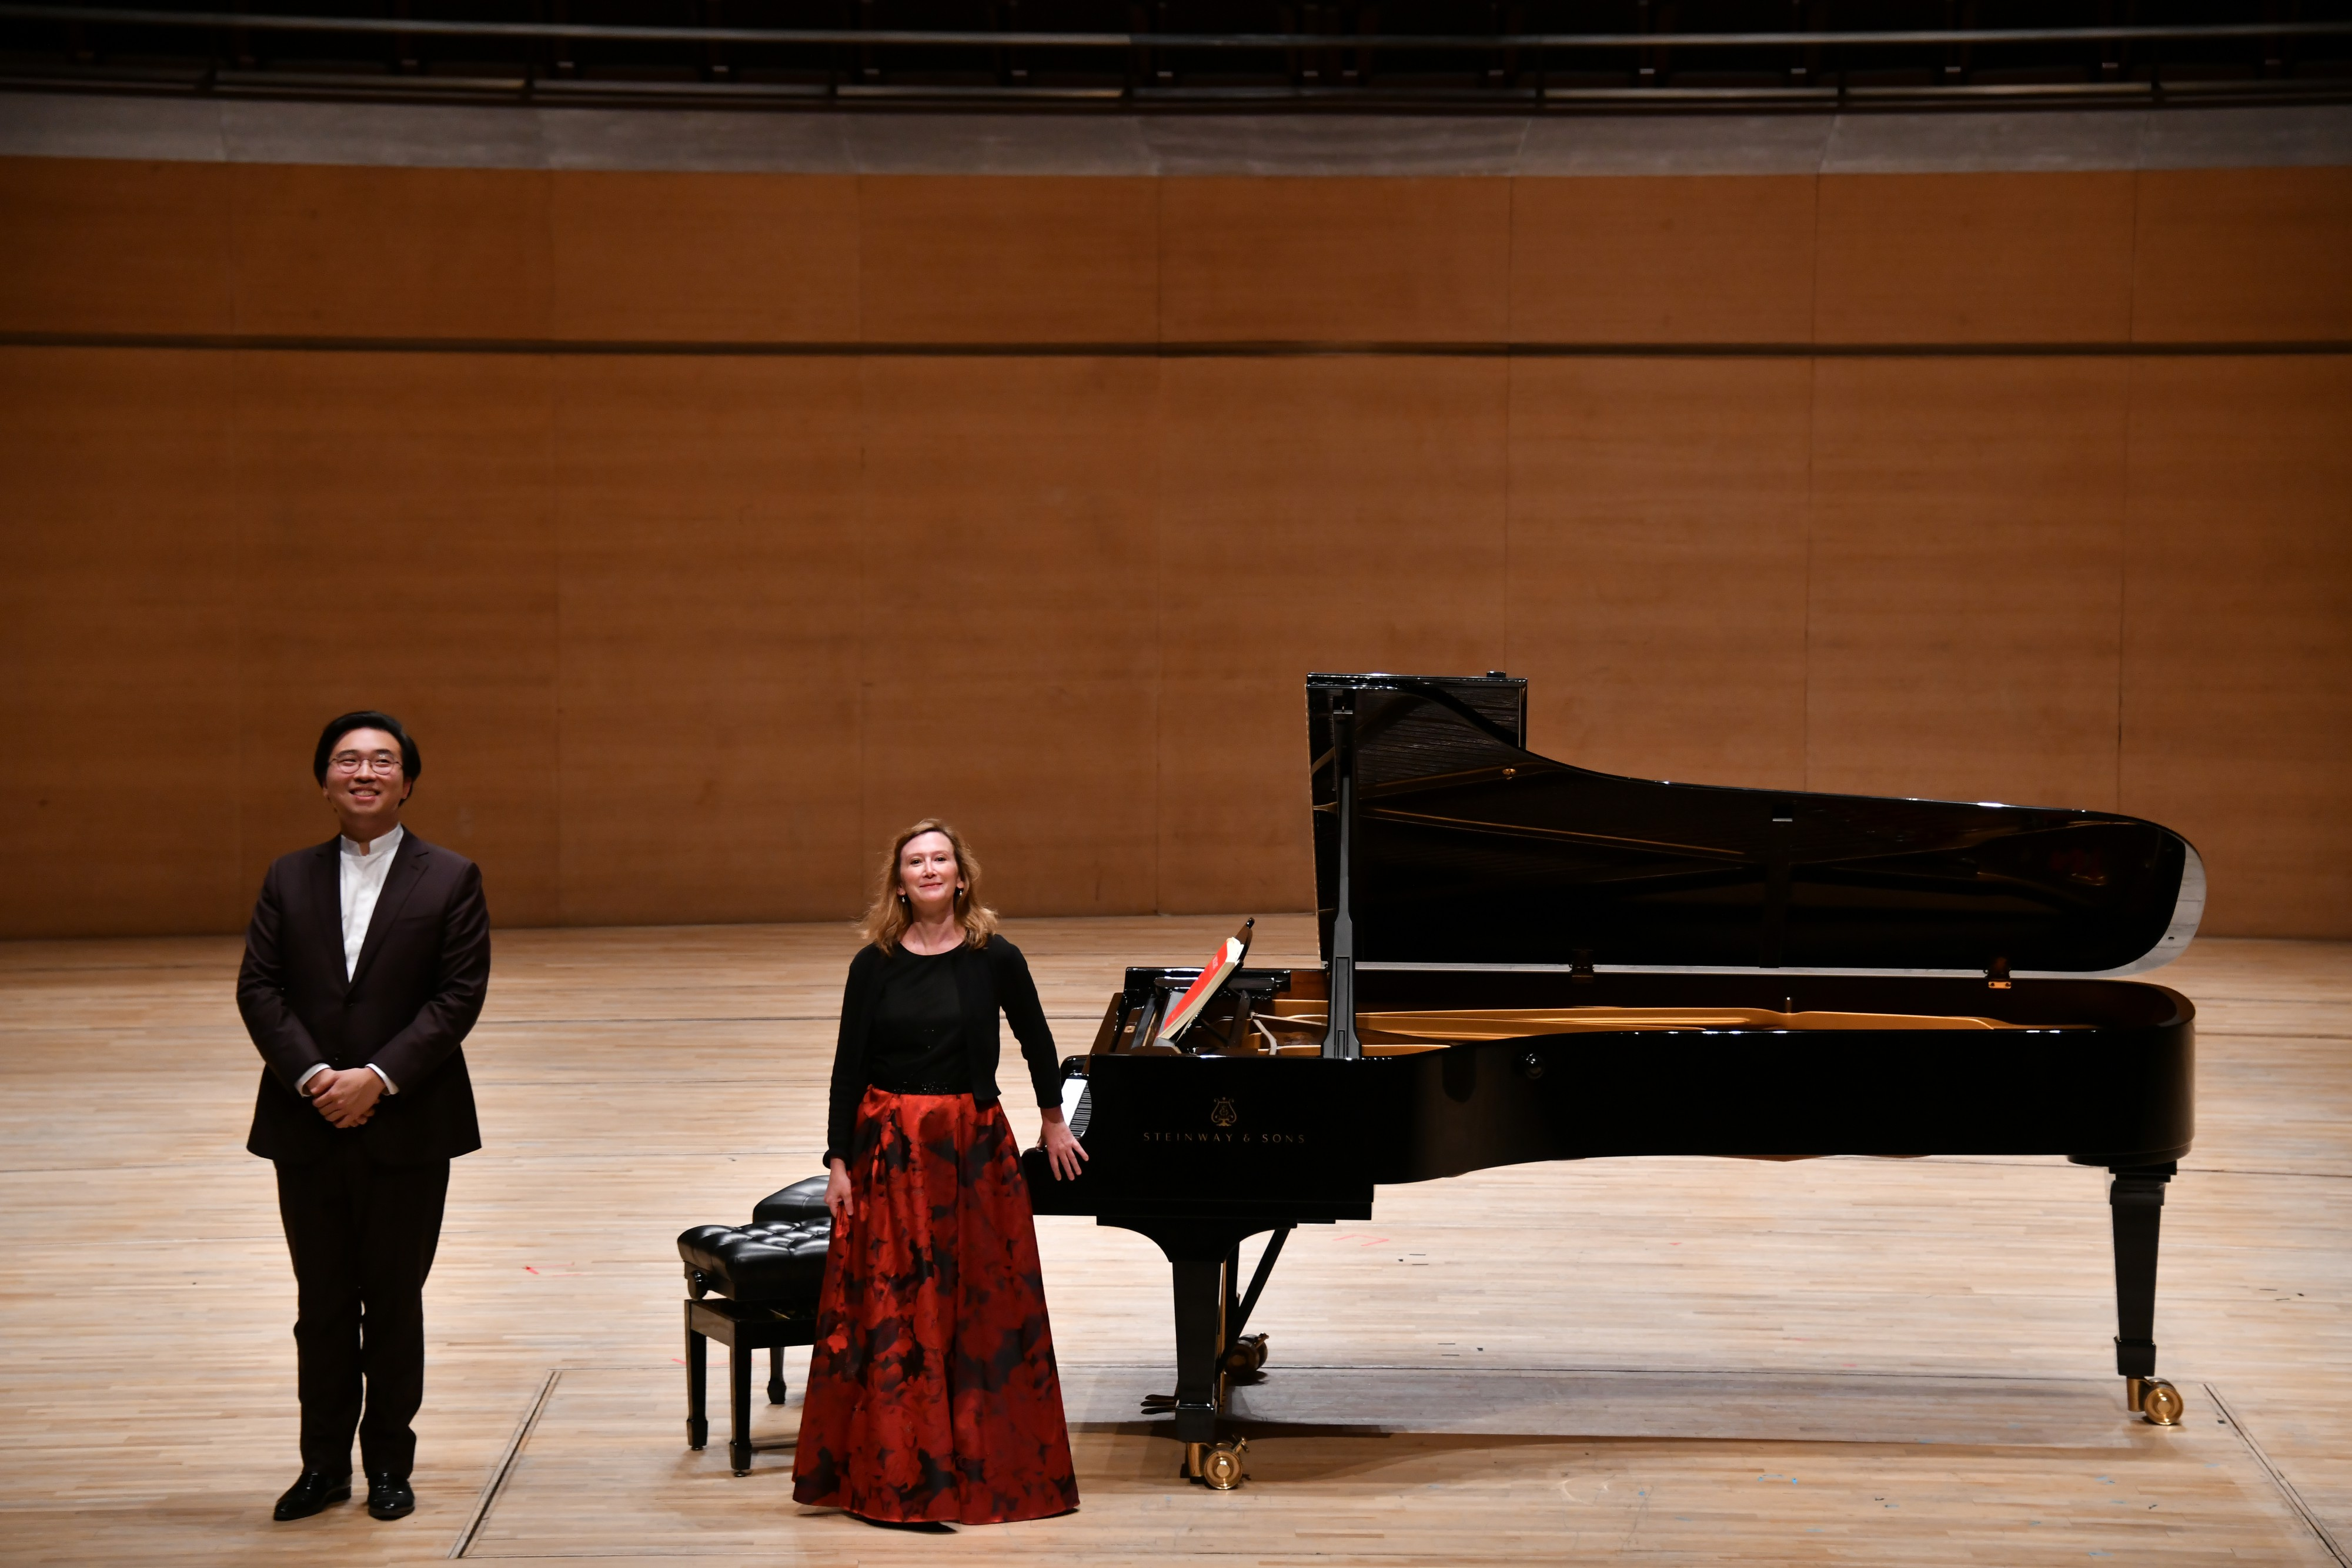 Audrey Axinn with pianist and Tianjin Juilliard resident faculty, Alvin Zhu, performing at The Tianjin Grand Theatre in China. Photo credit: Duan Chao